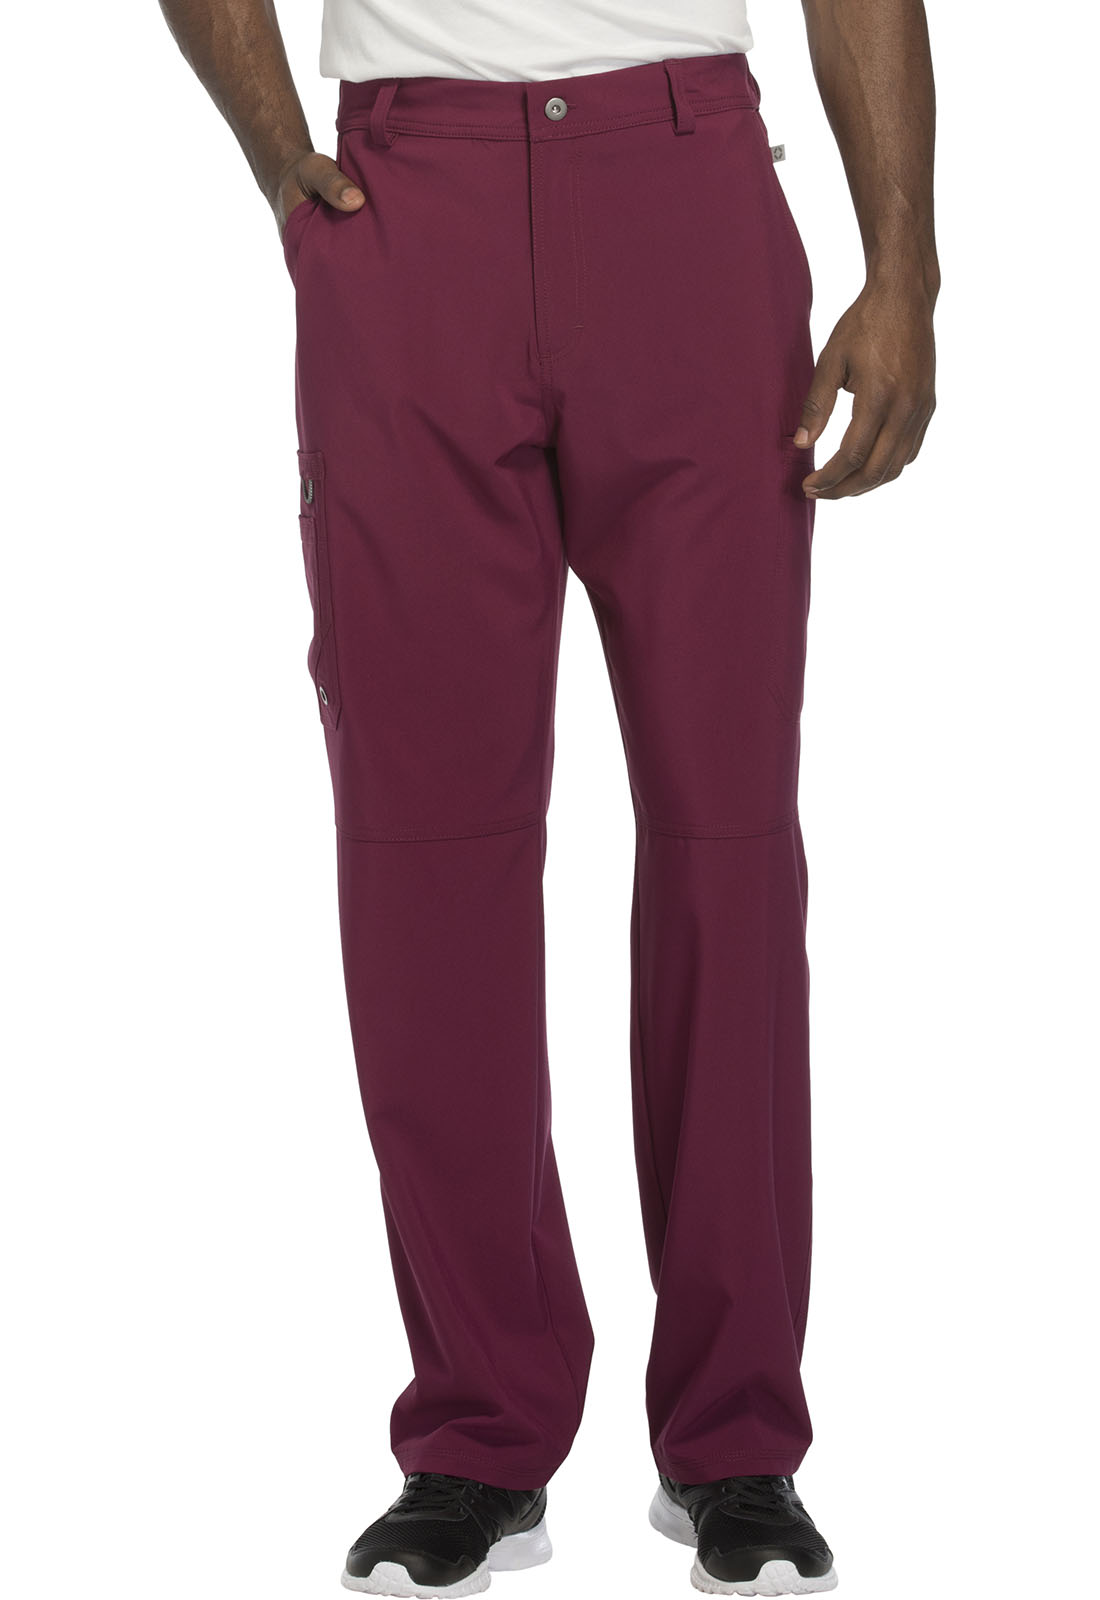 0aeb3e68e80 Infinity Men's Fly Front Pant in Wine CK200A-WNPS from Scrubs Express